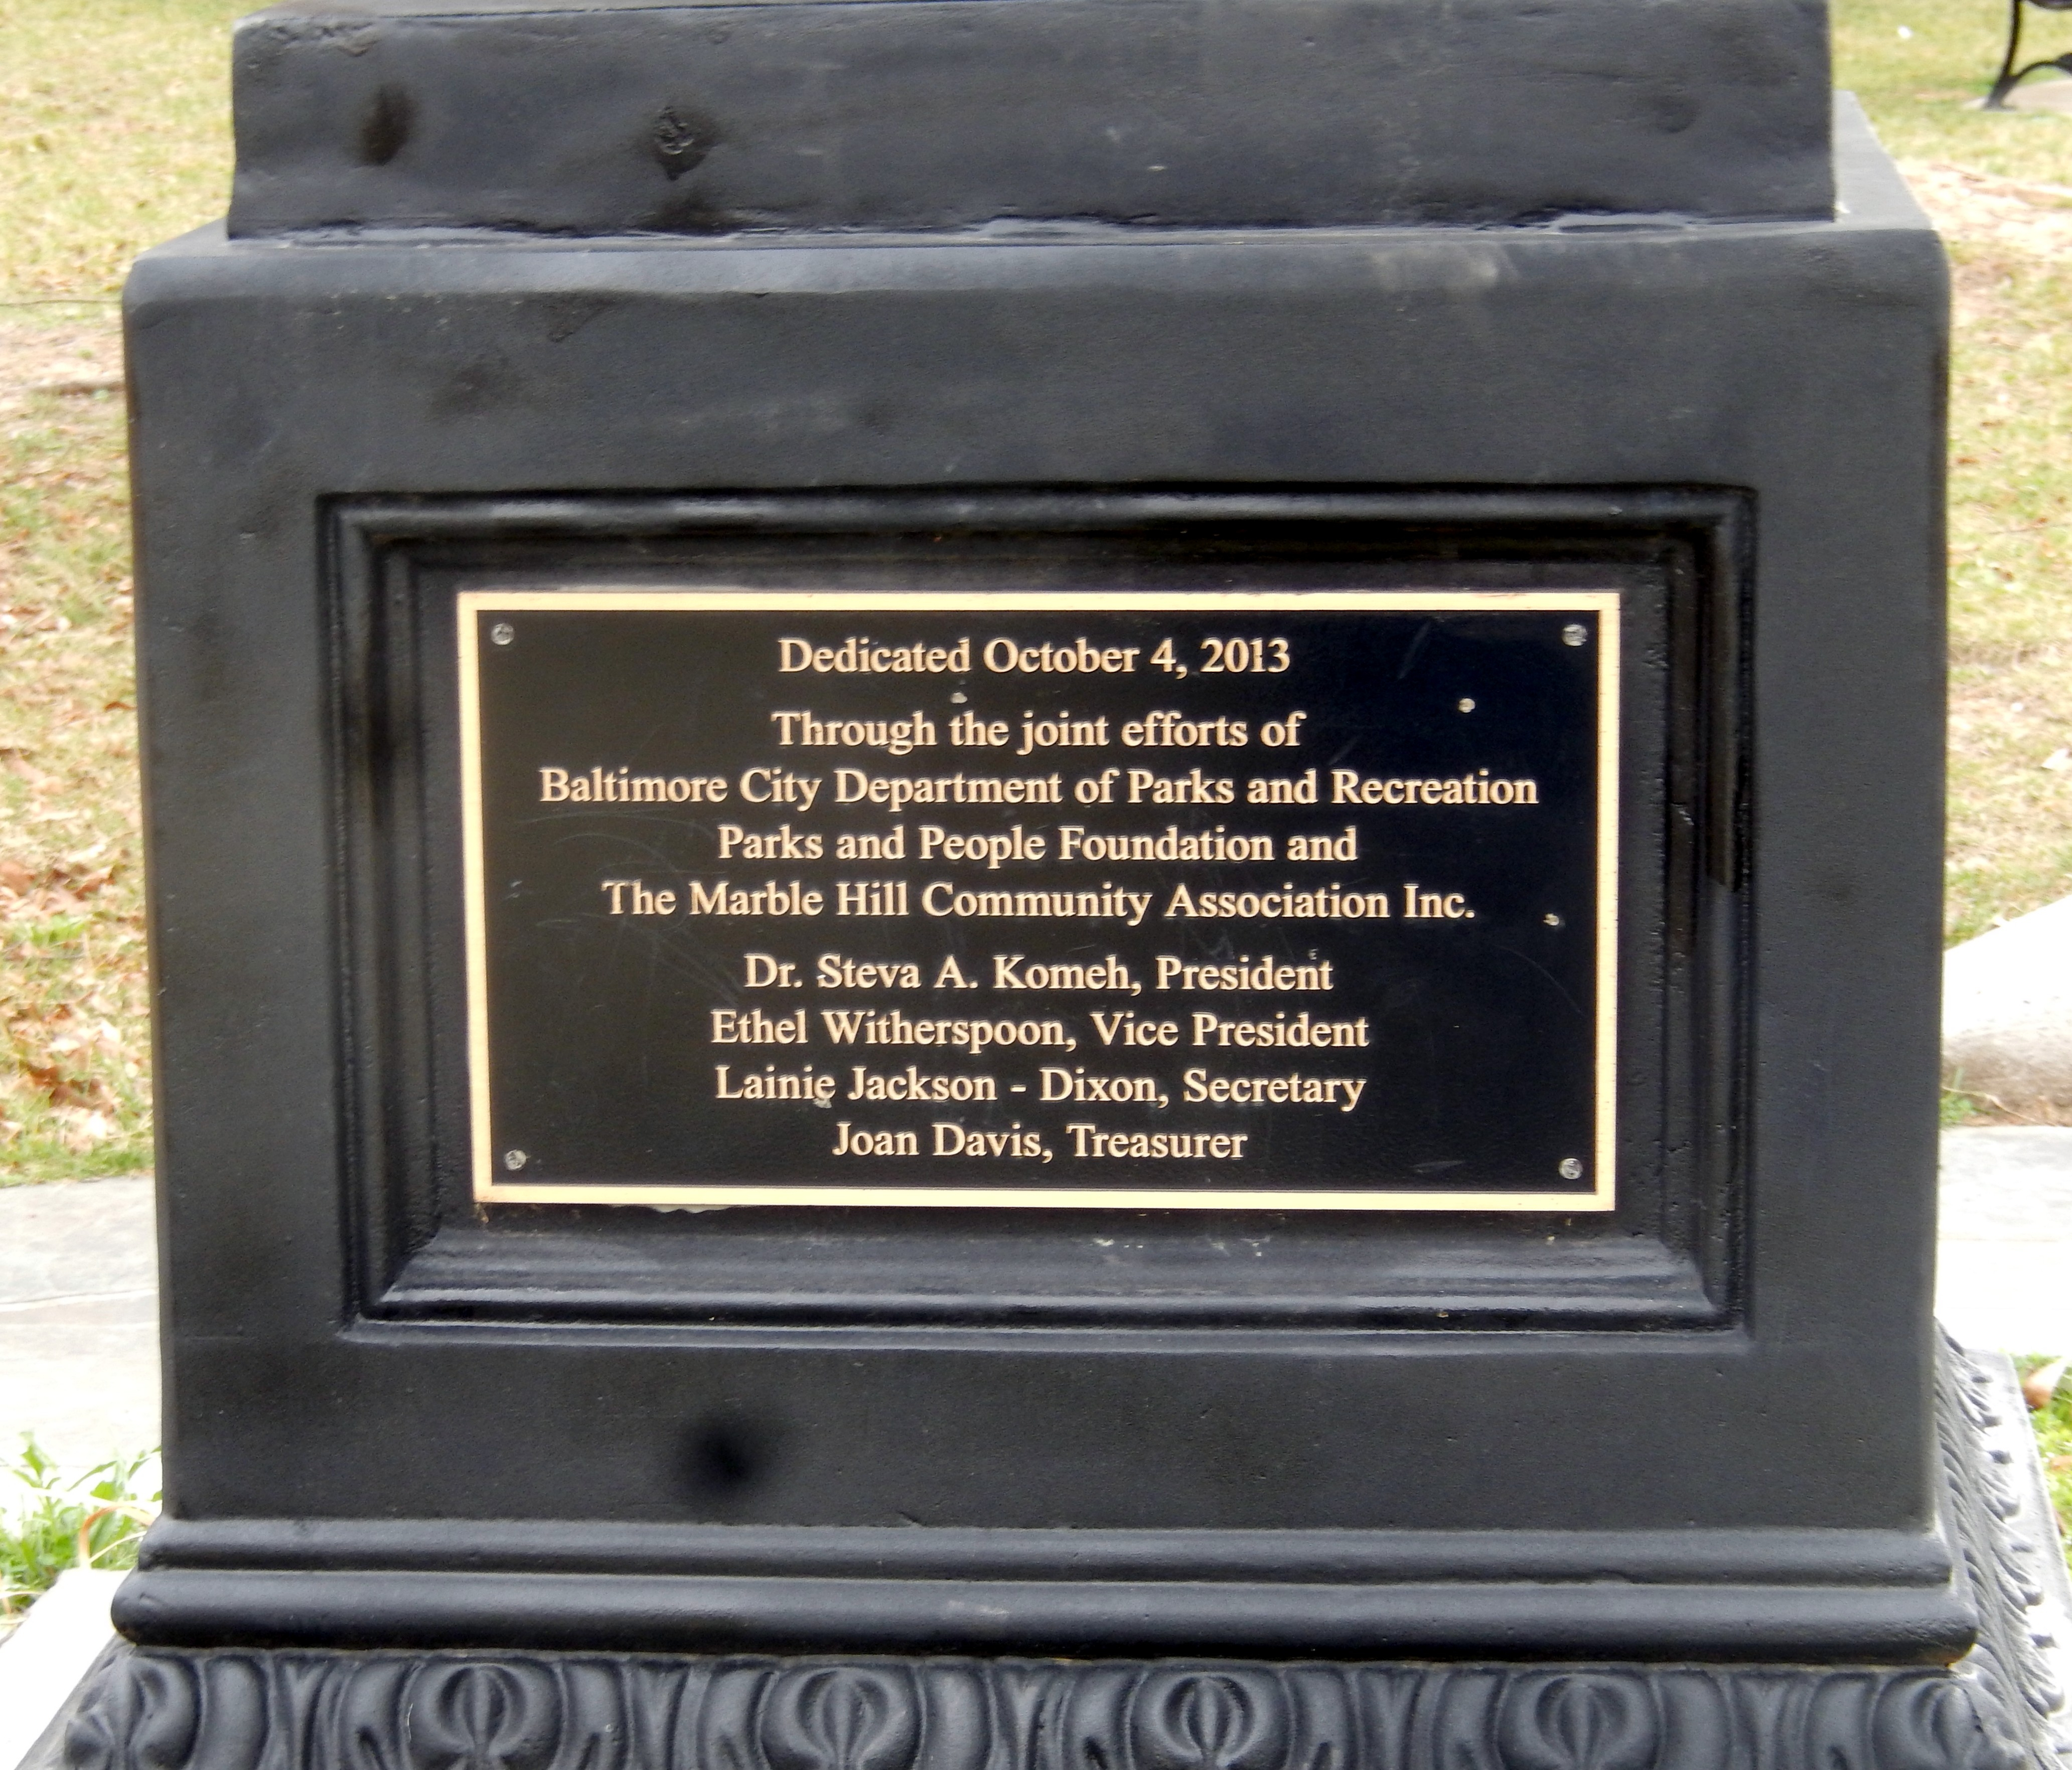 Rev. Dr. Vernon Nathaniel Dodson Memorial Marker-Left side Panel